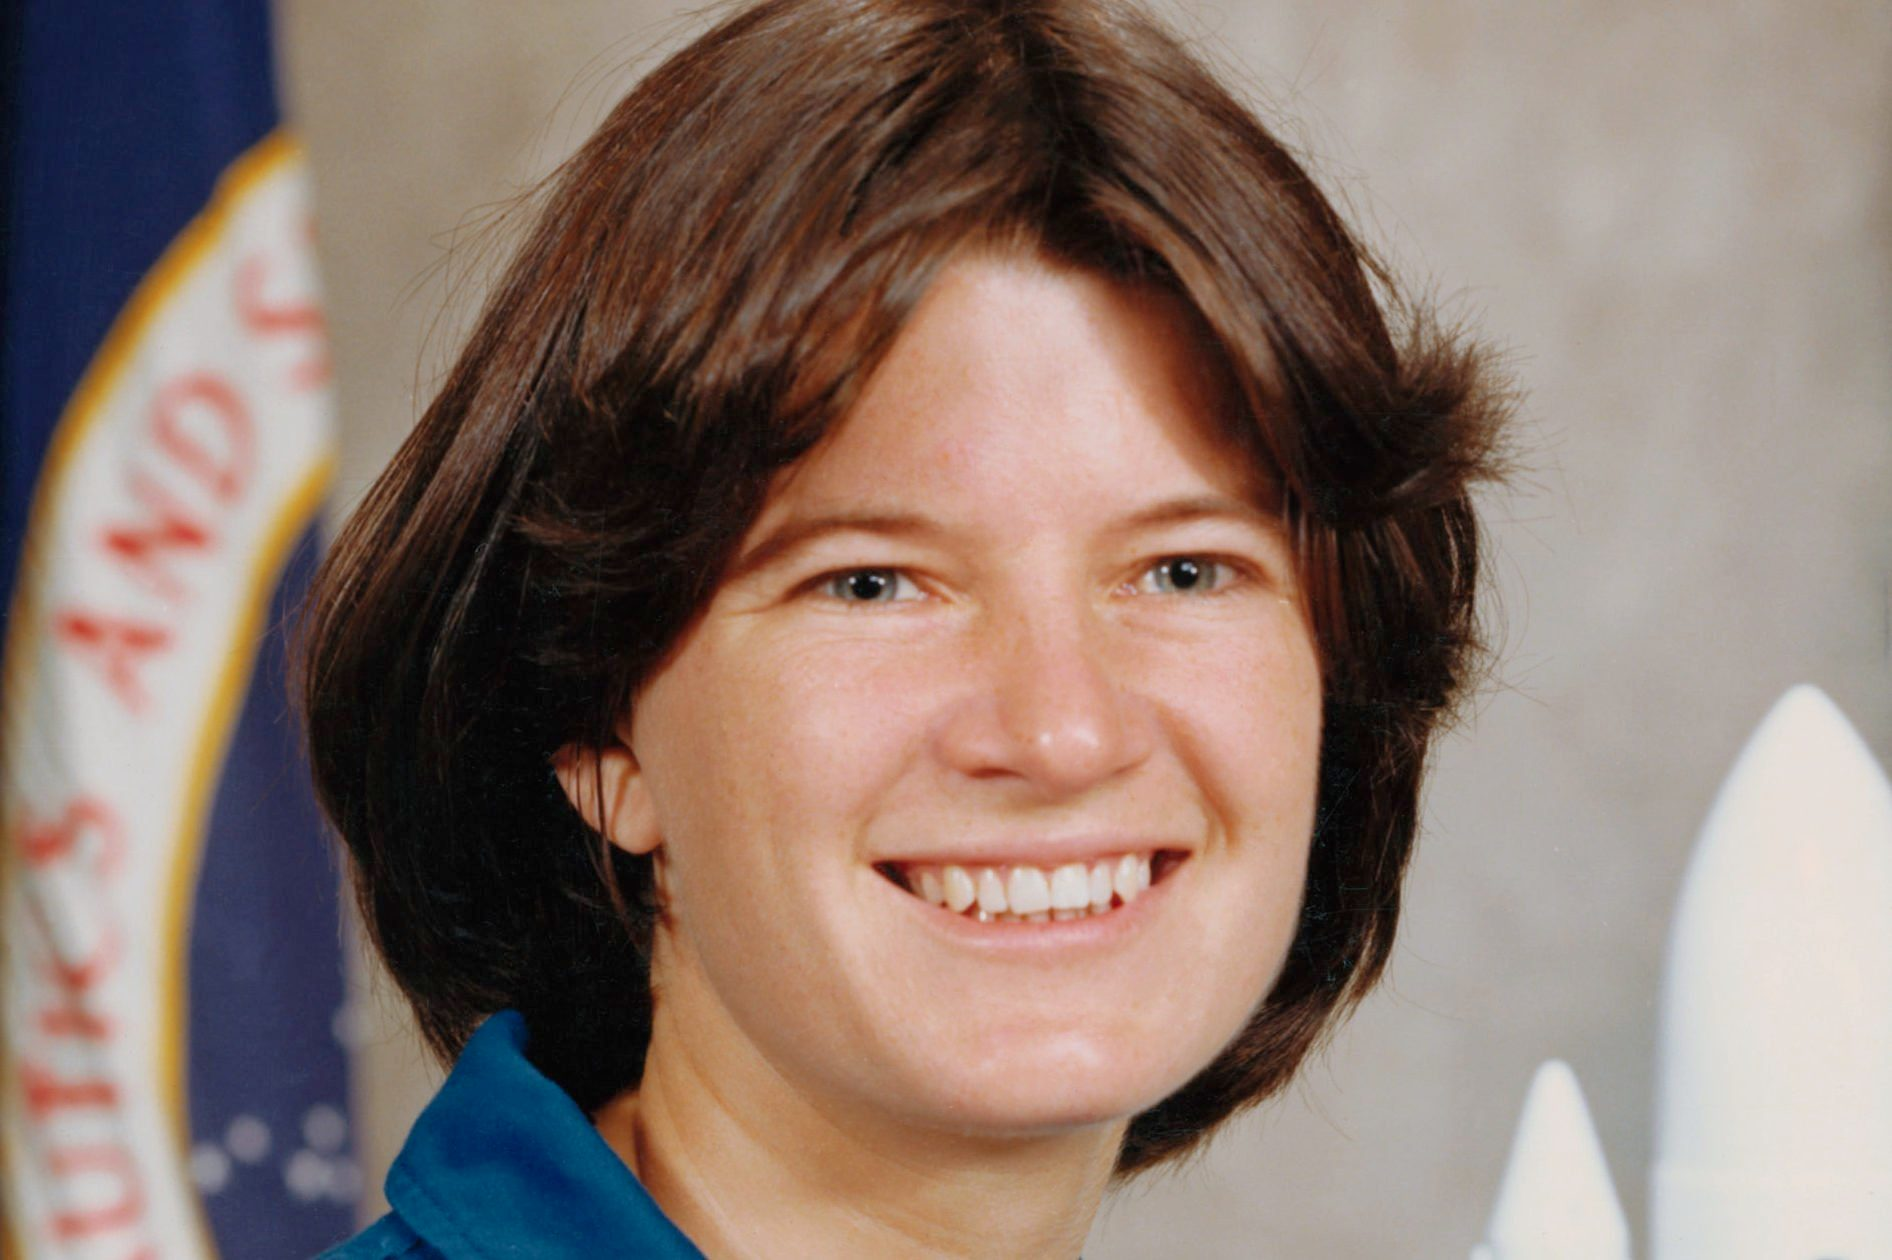 American Astronaut Sally Ride